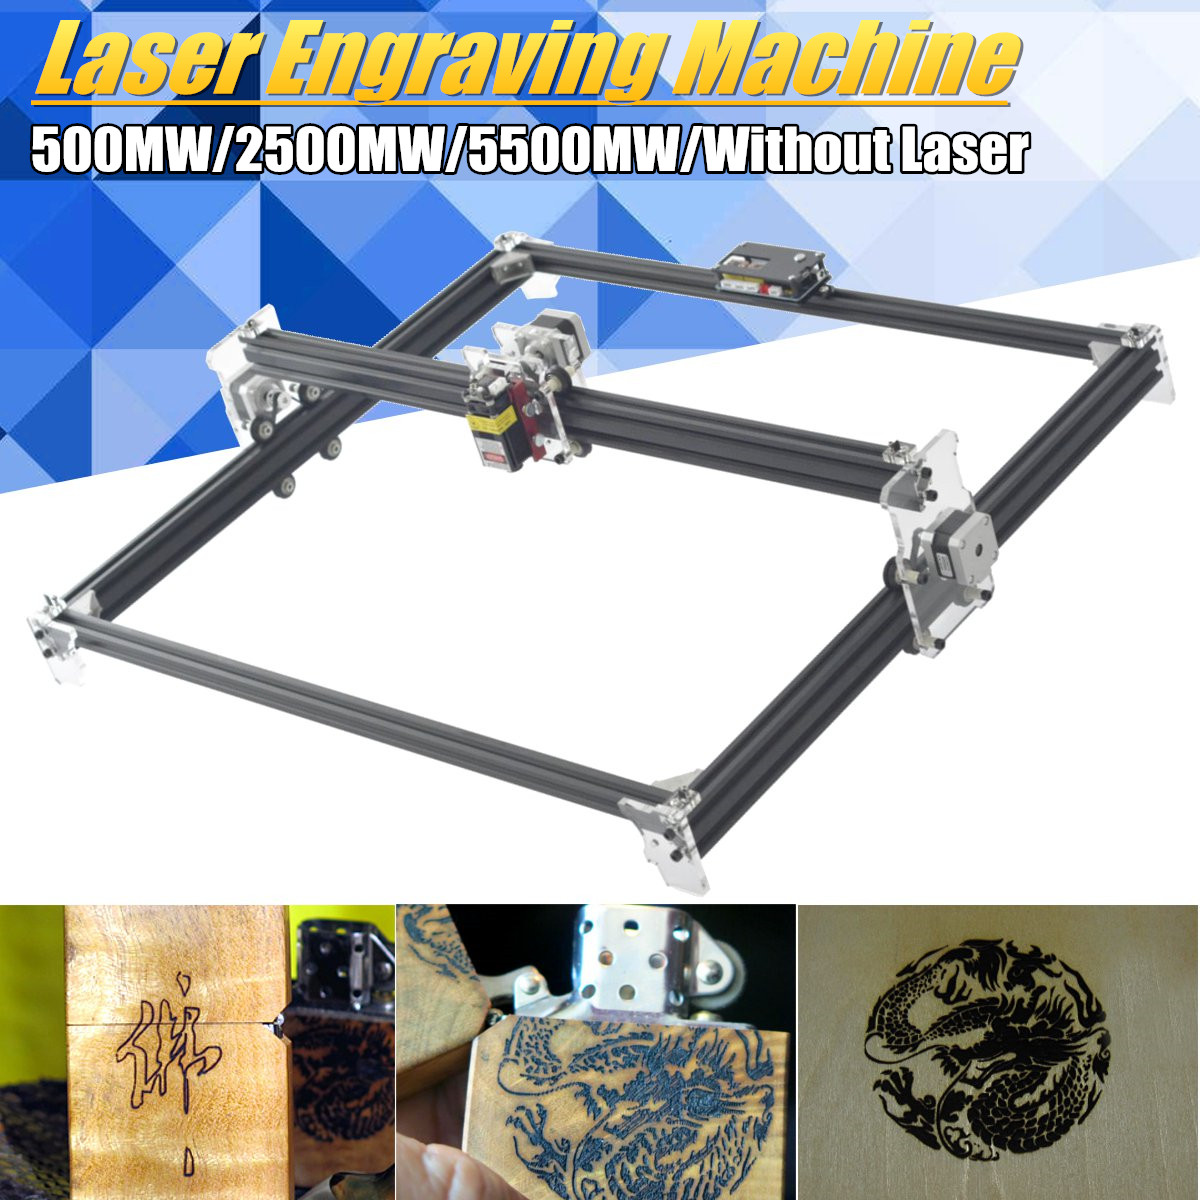 DIY Laser Engraver Machine DVP6550 CNC Laser Engraving Machine Wood Router DIY Engraver Desktop Wood Router/Cutter/Printer цены